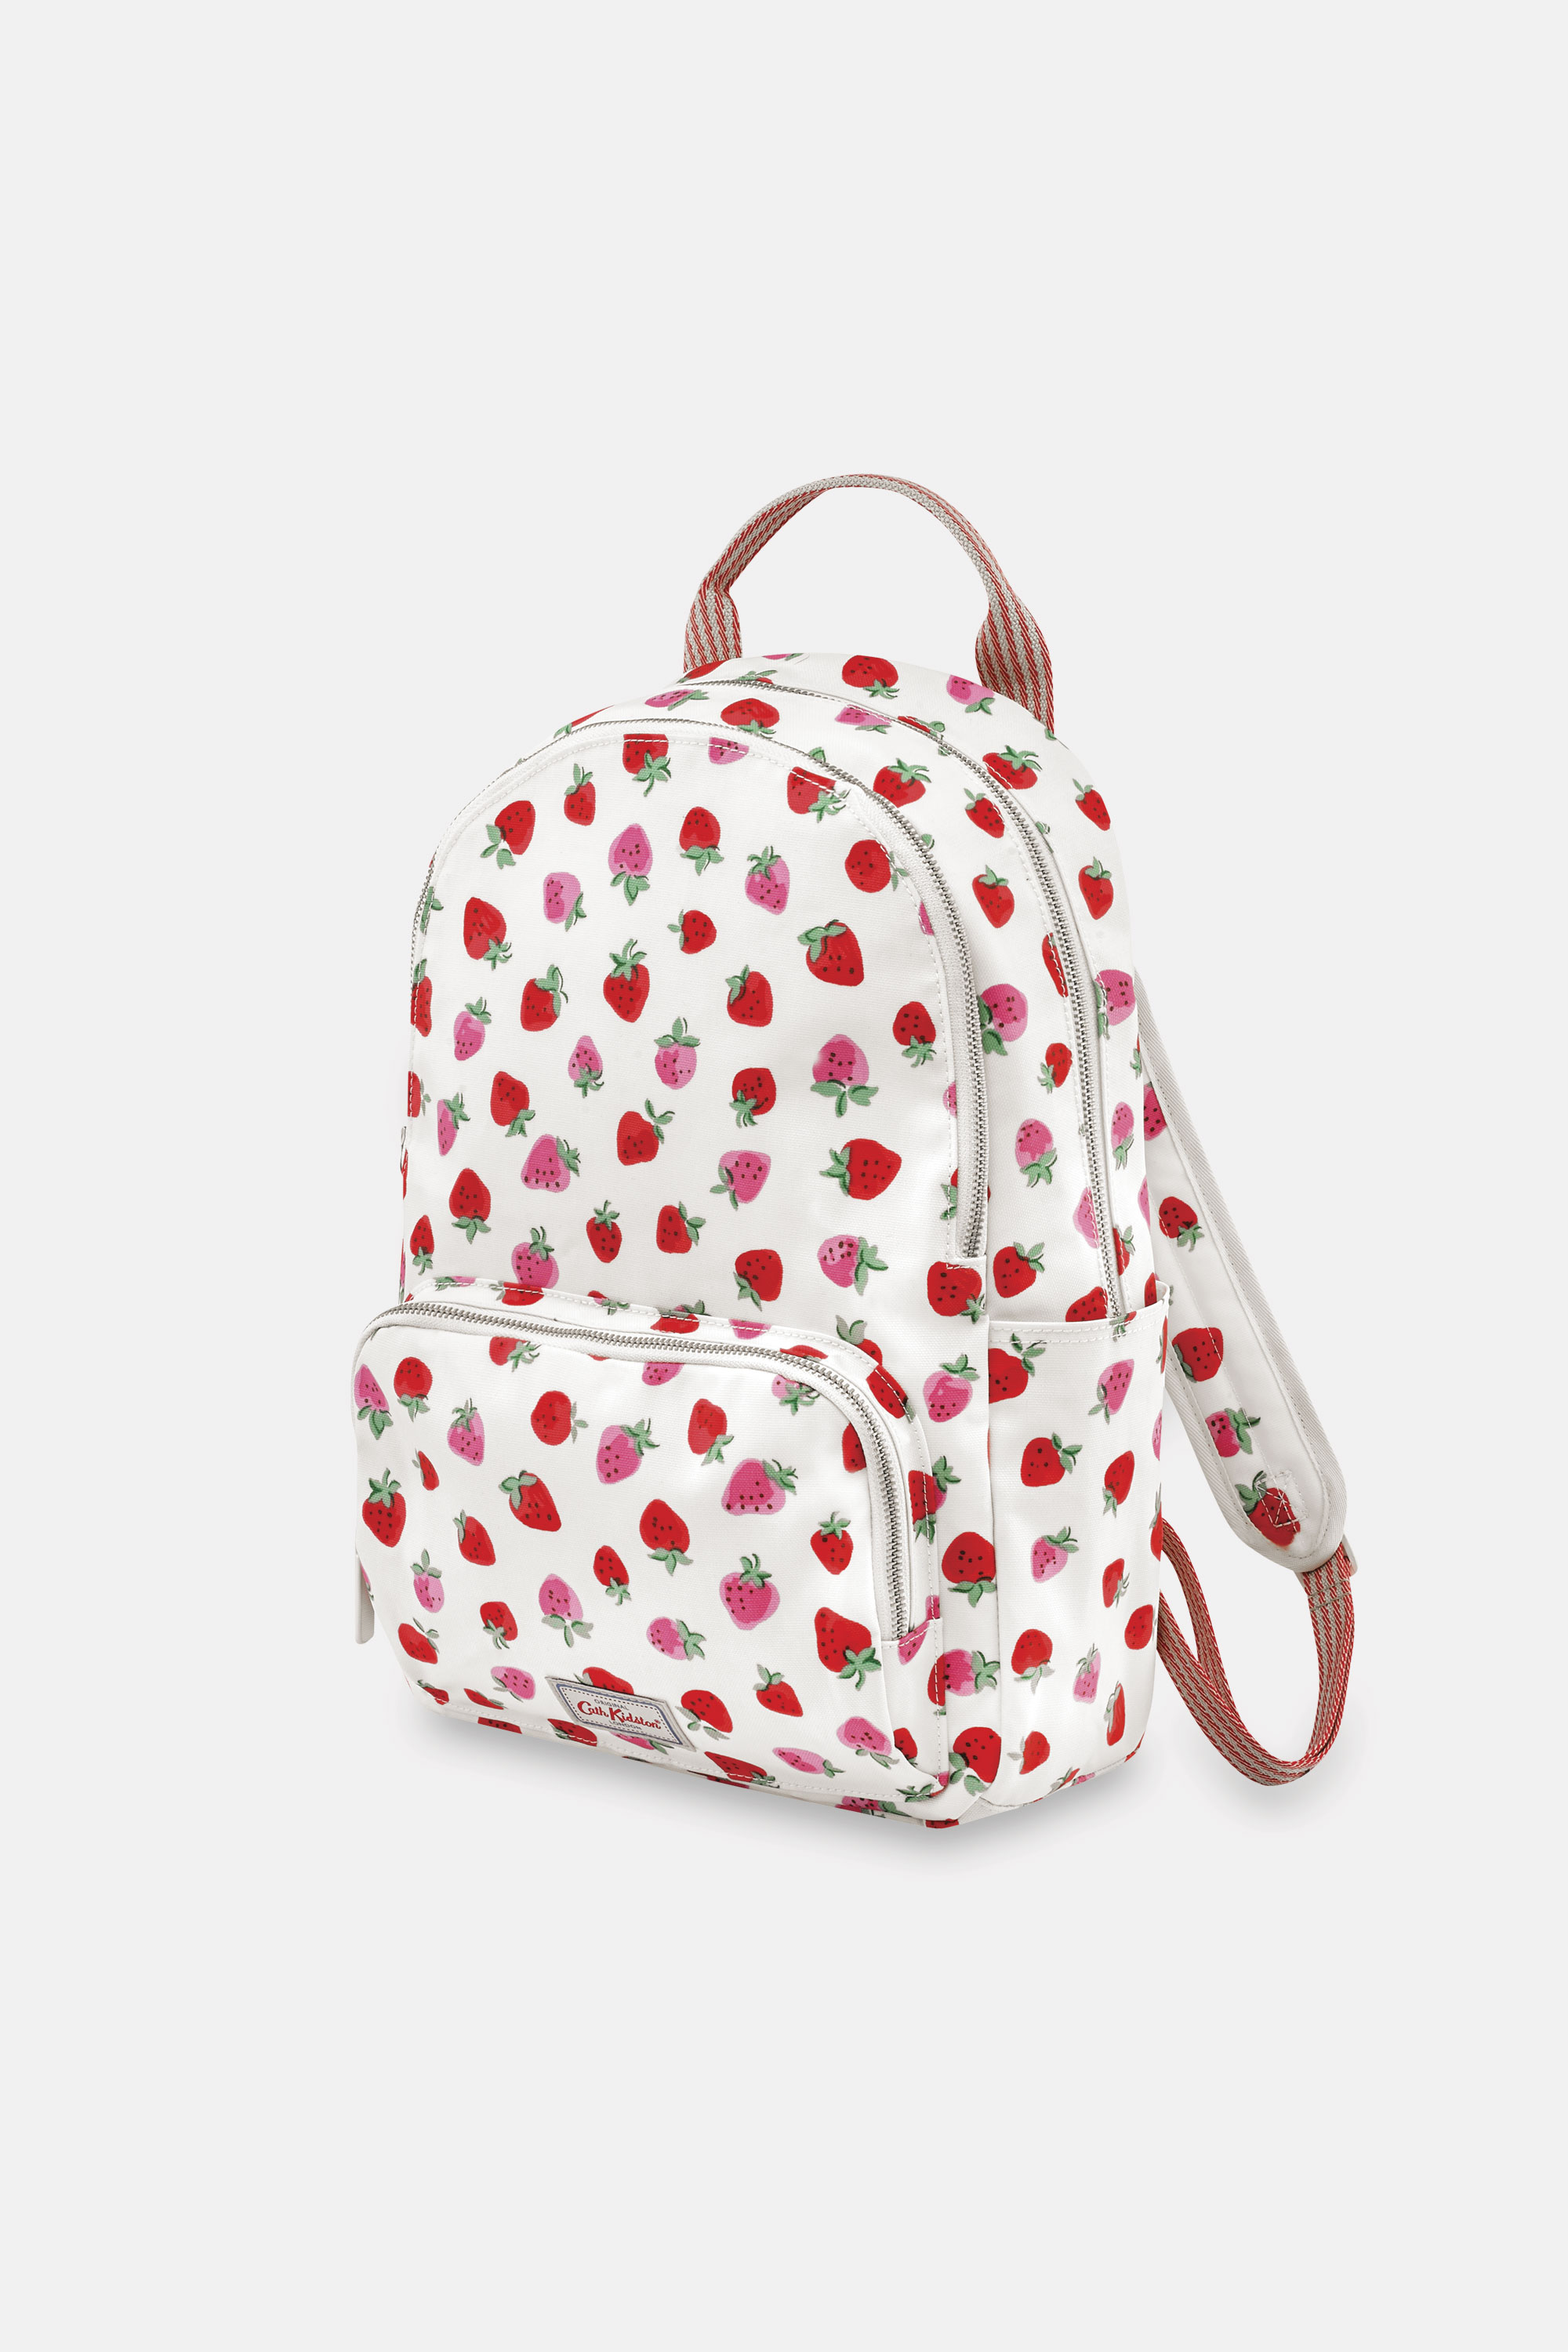 Cath Kidston Sweet Strawberry Pocket Backpack in Ivory, 100% PVC Coated Cotton